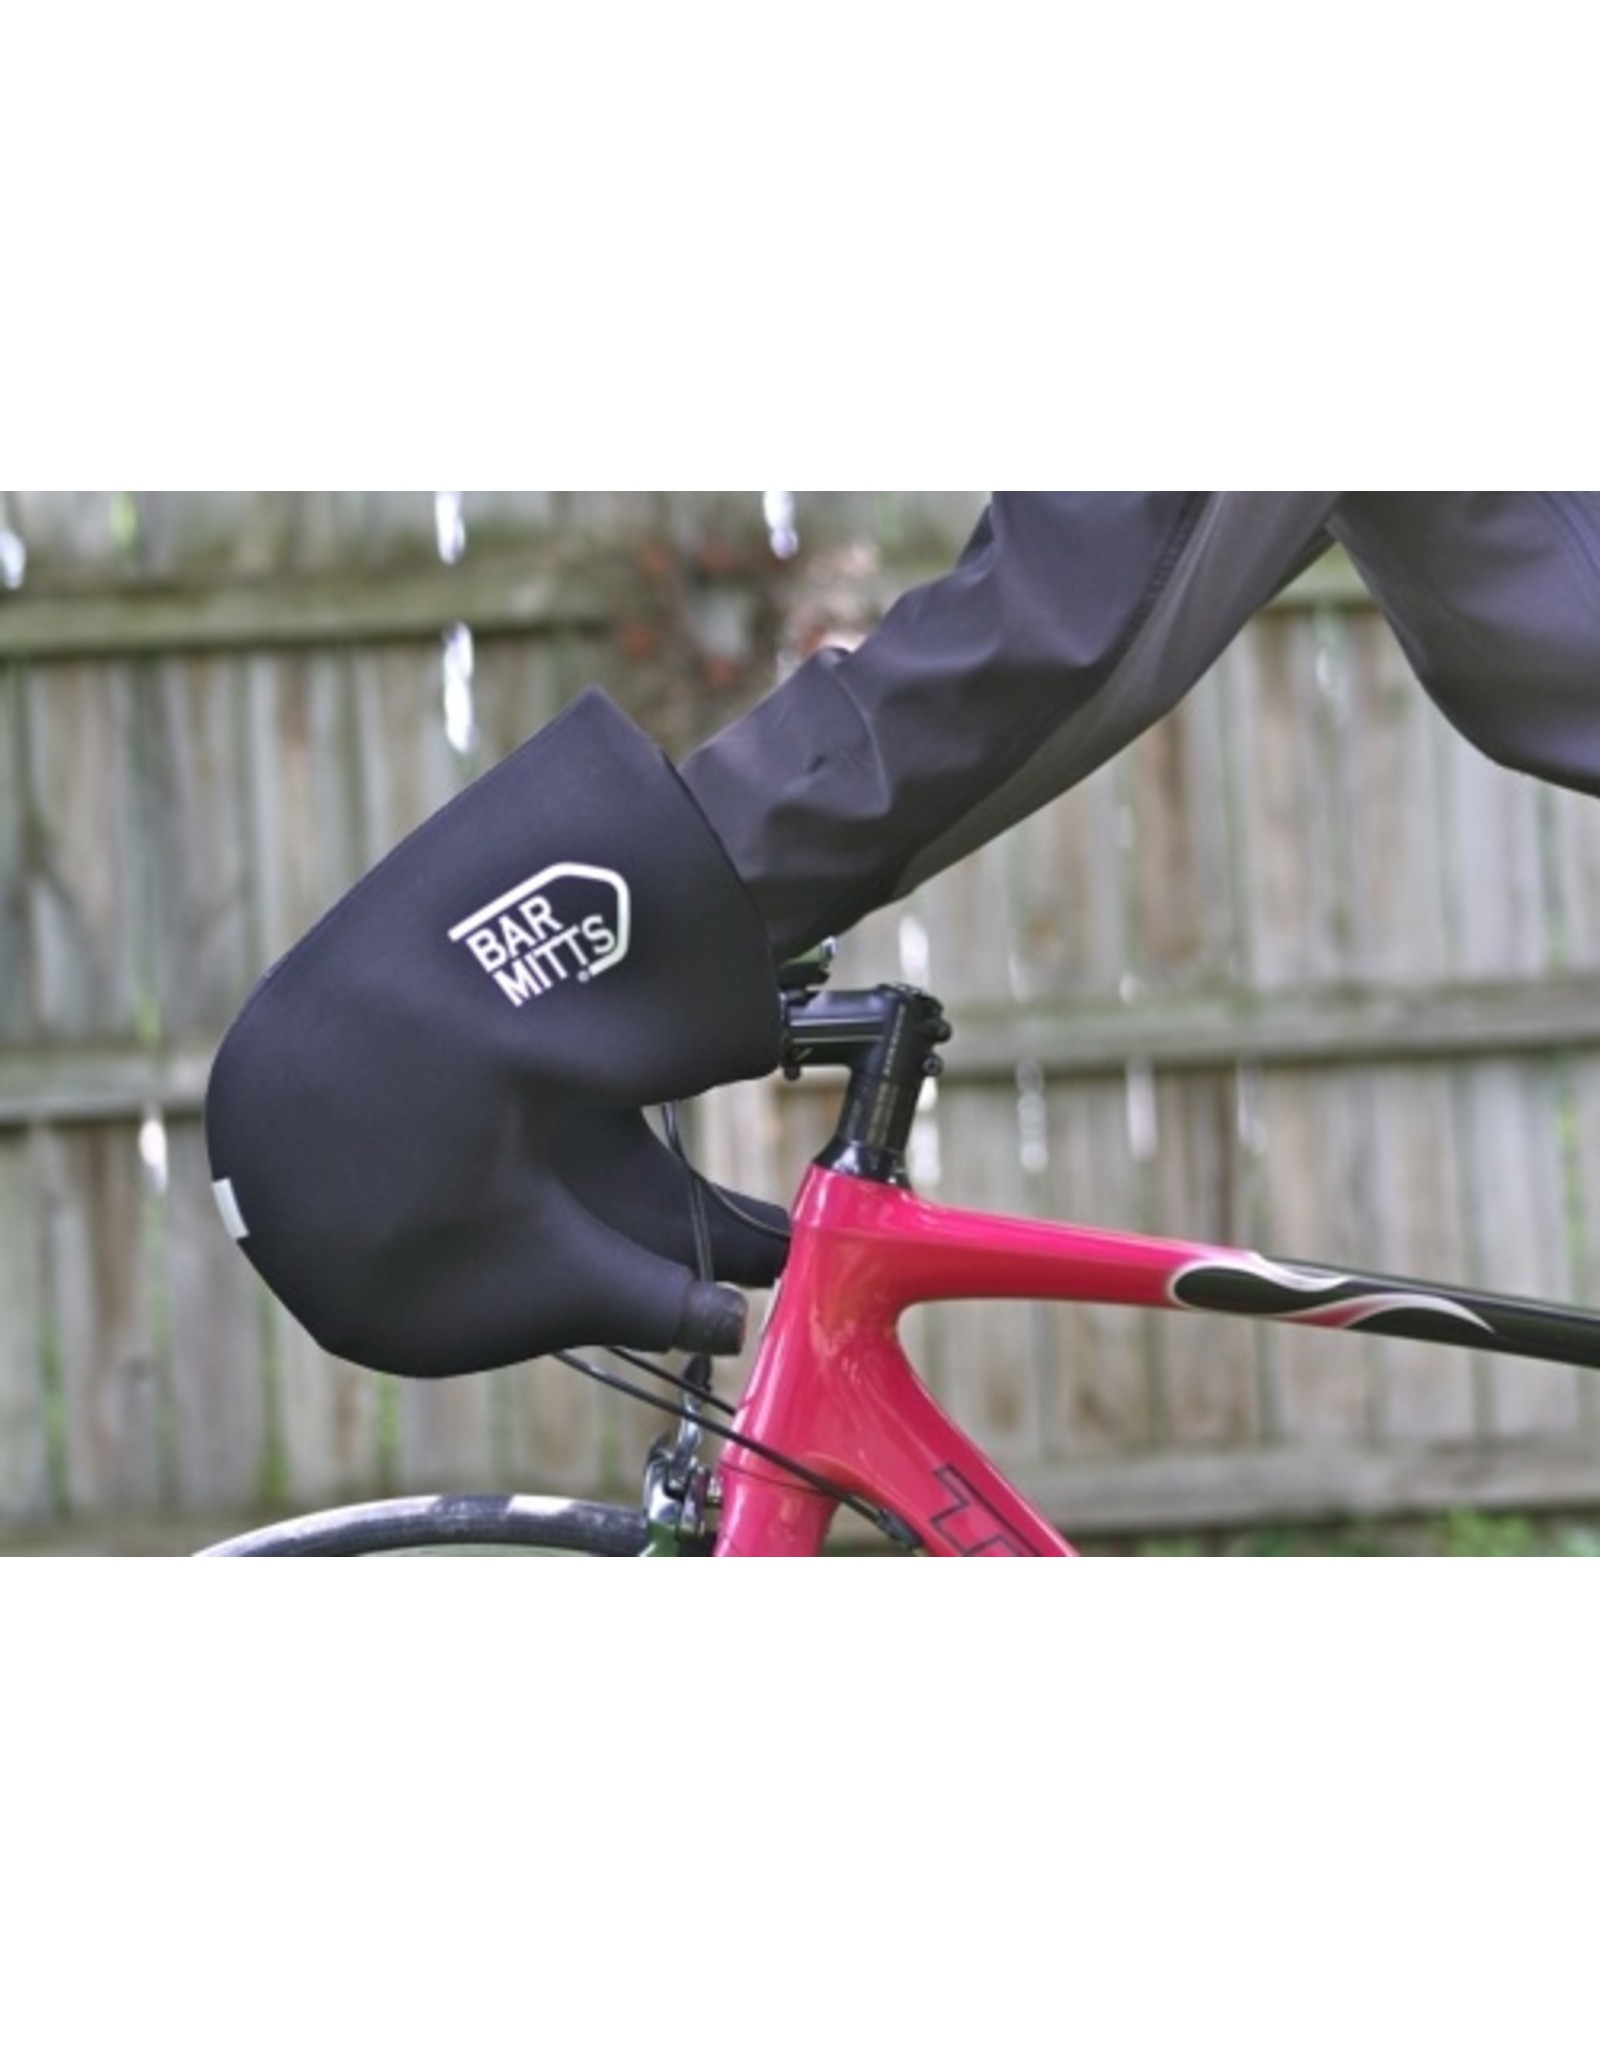 BAR MITTS Bar Mitts Road/Drop Bar with Internal Cable Routing - Large